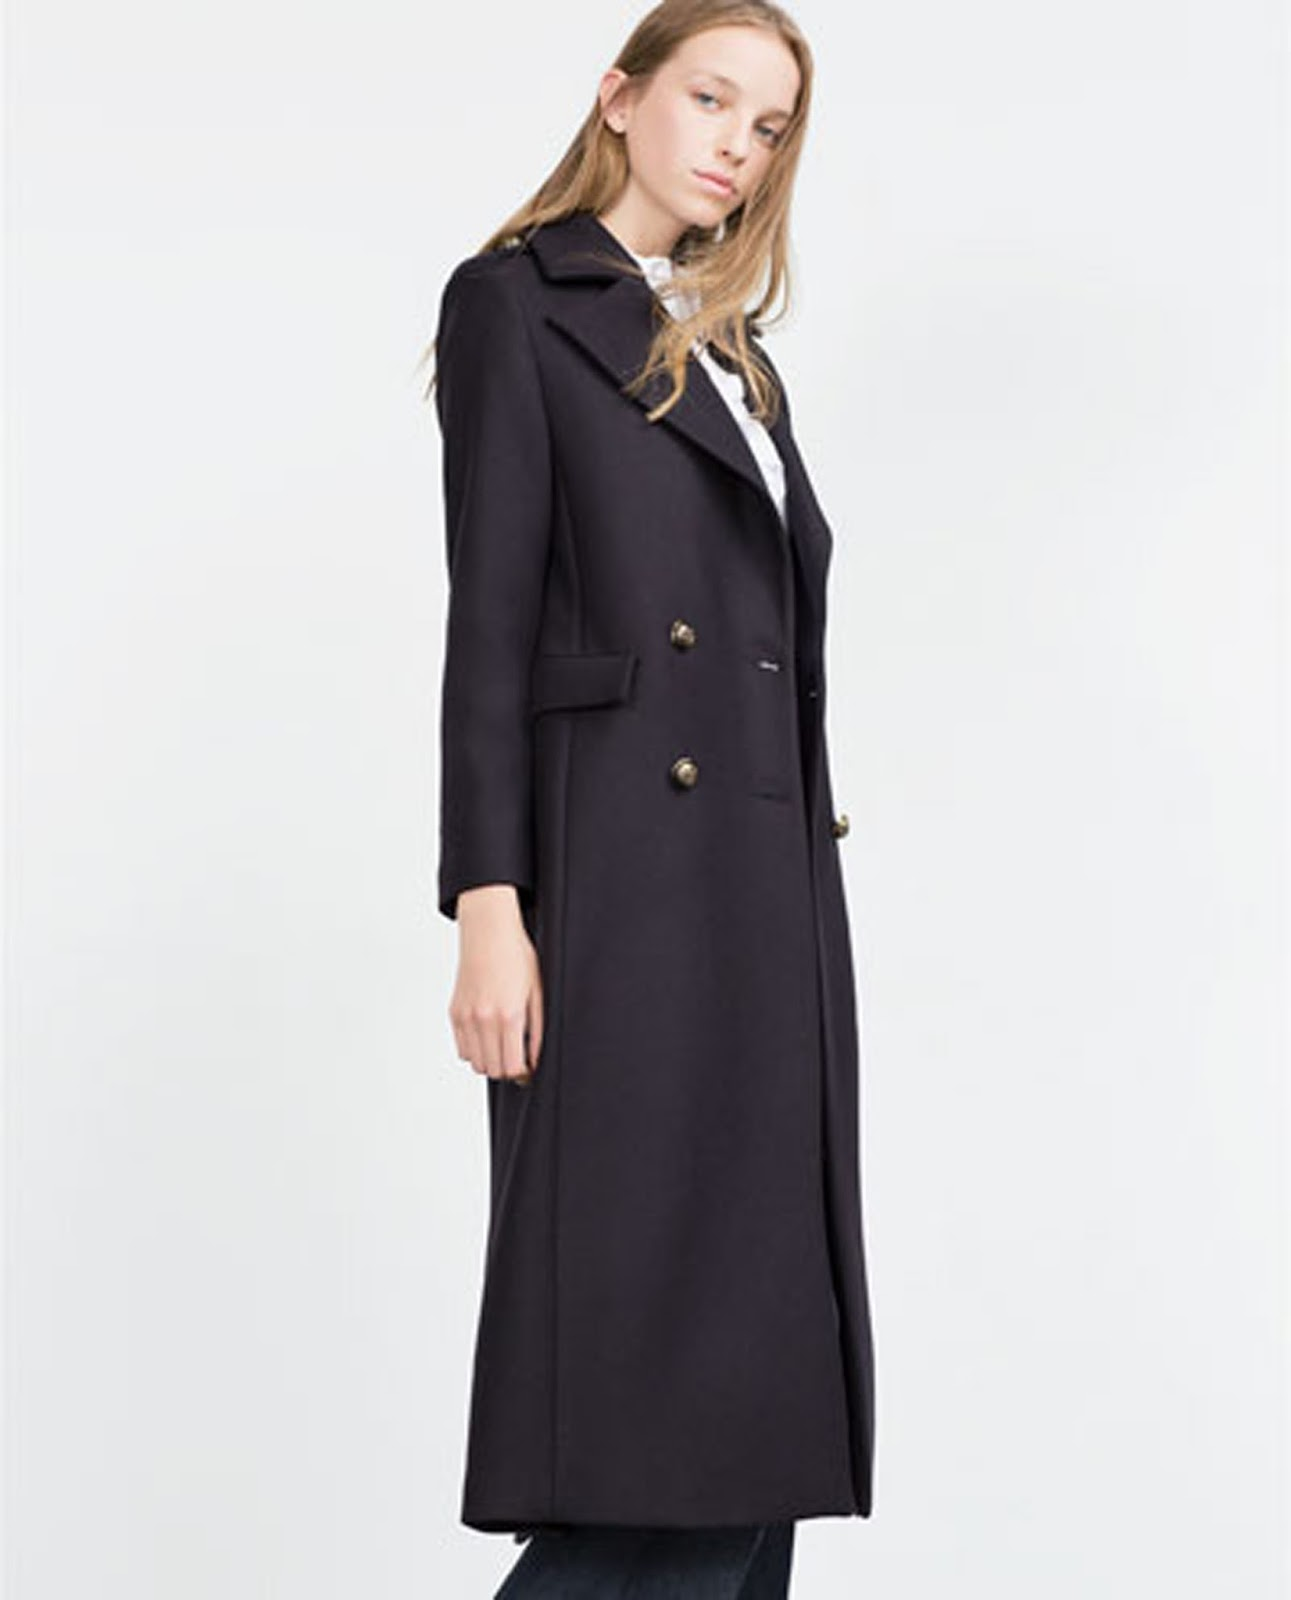 Eniwhere Fashion - Zara's Wishlist - Natale - coat